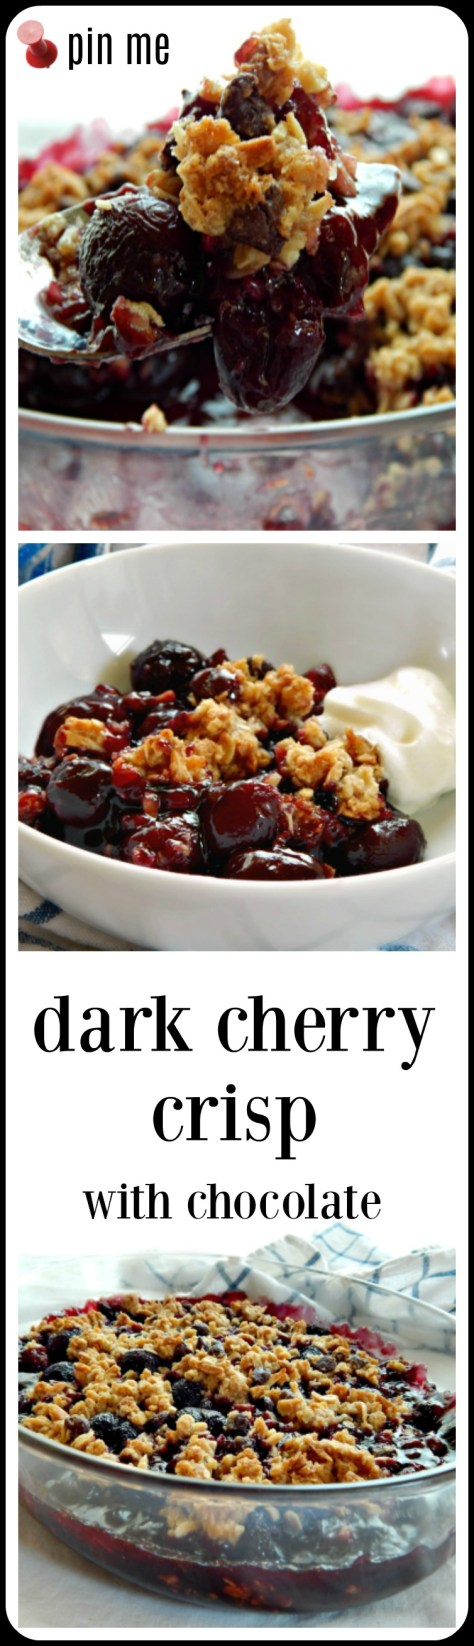 Dark Cherry Crisp with Chocolate - those big, dark juicy cherries play so well with a touch of chocolate and the crunchy topping is just the right touch.